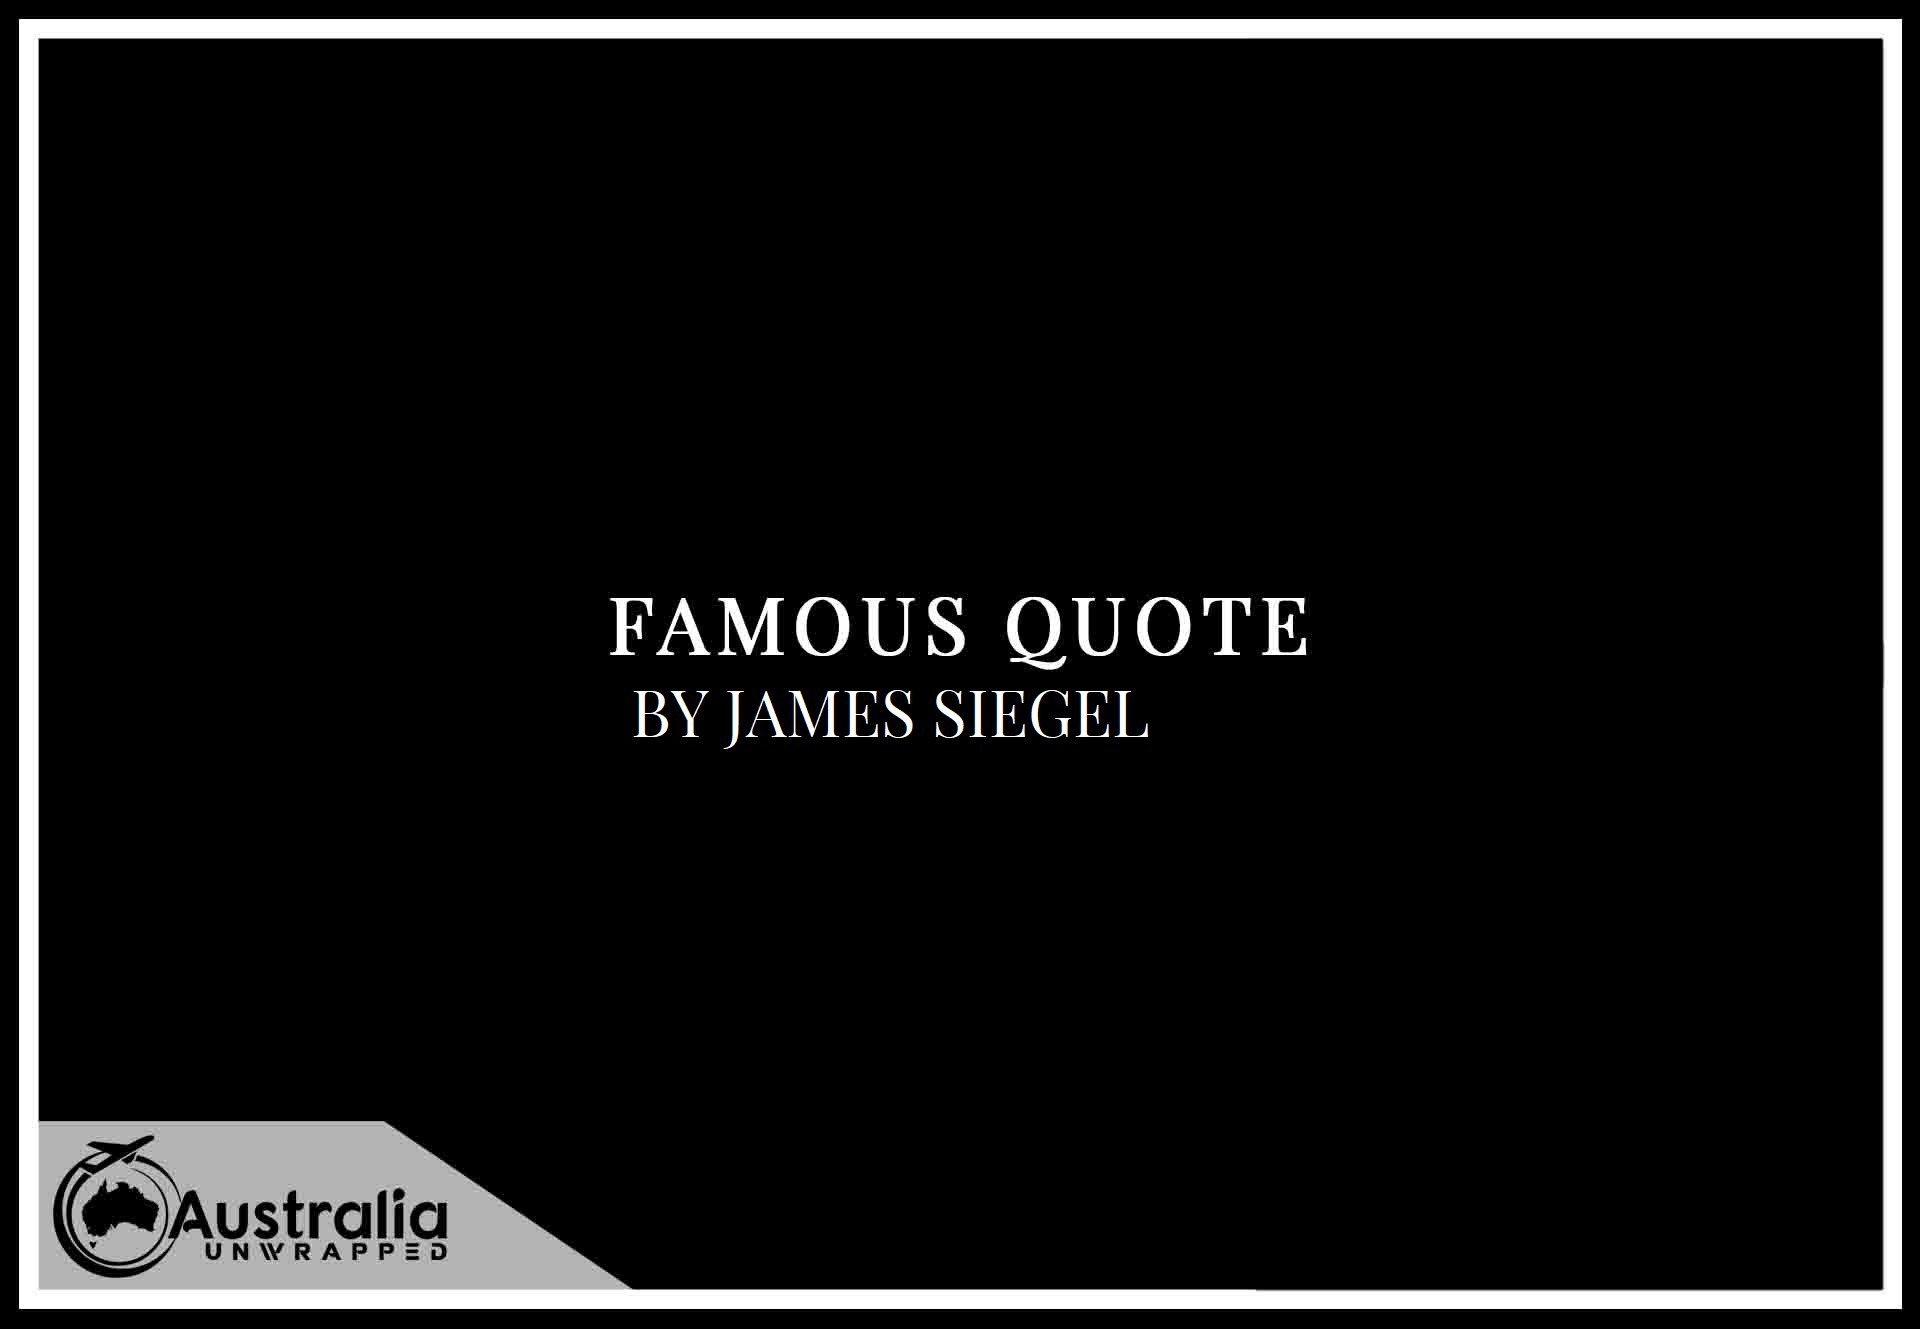 Top 1 Famous Quotes by Author James Siegel